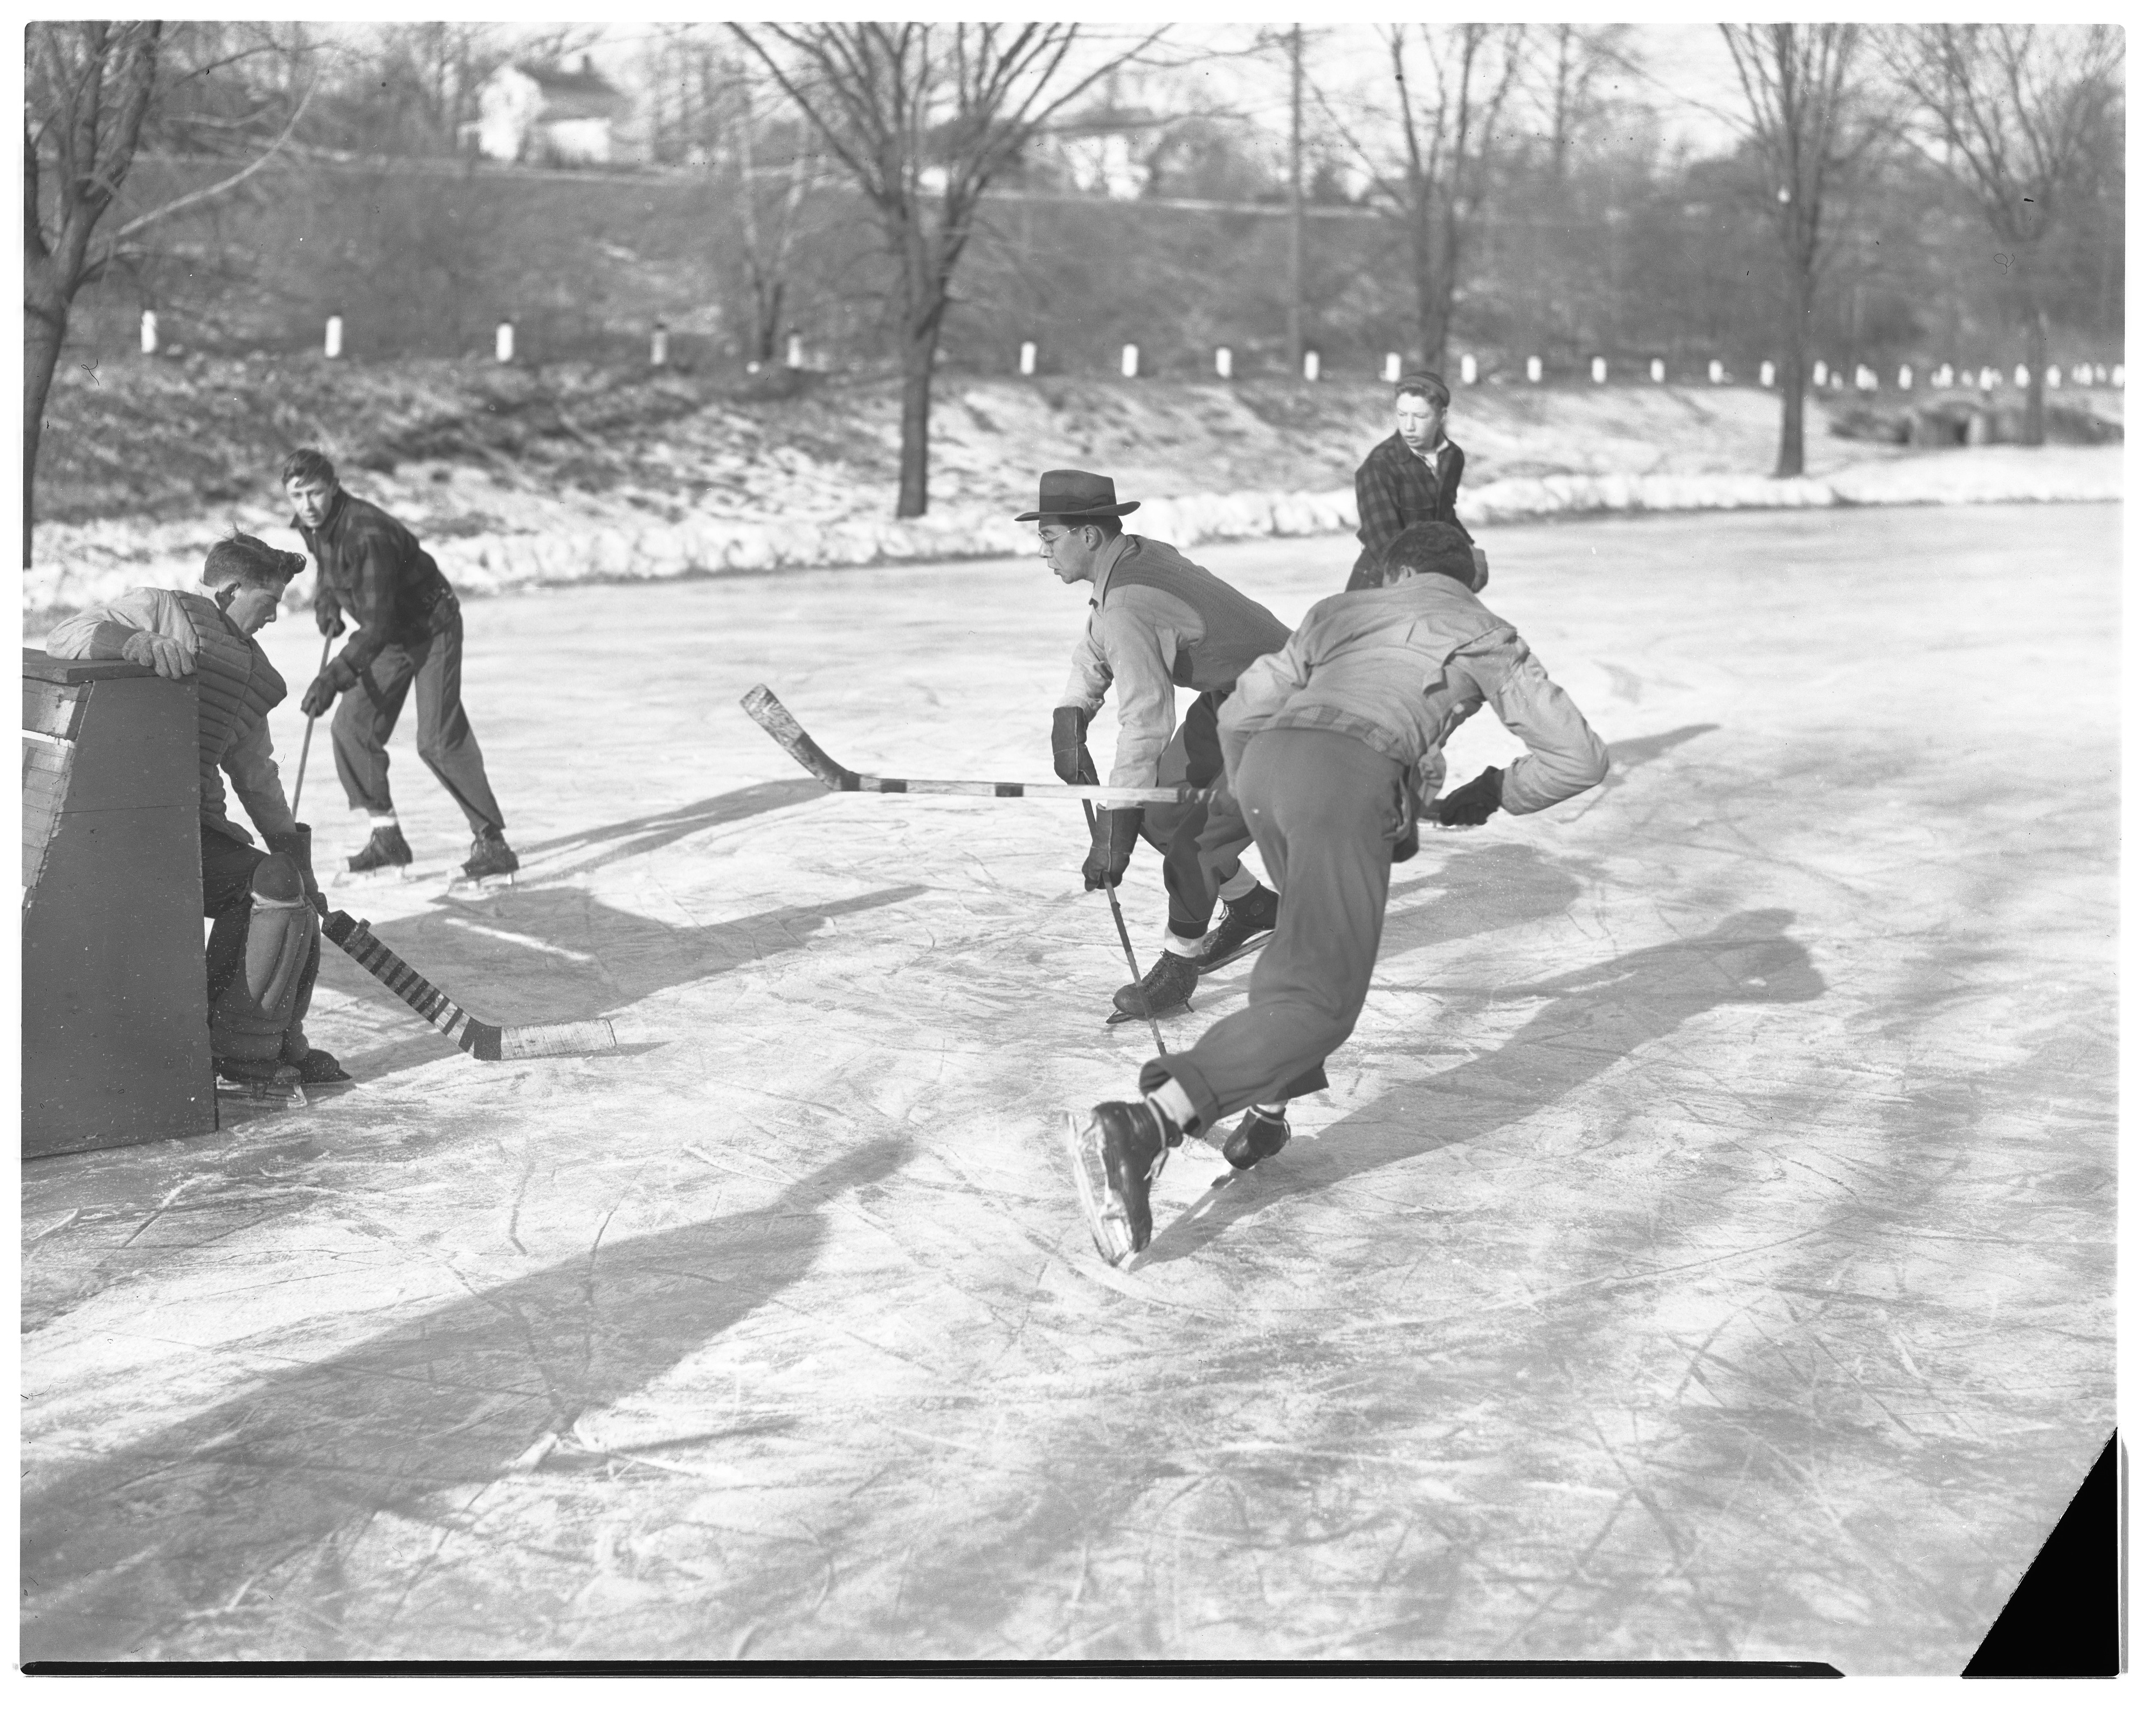 Players Enjoy Outdoor Hockey at North Side Pond, January 1947 image